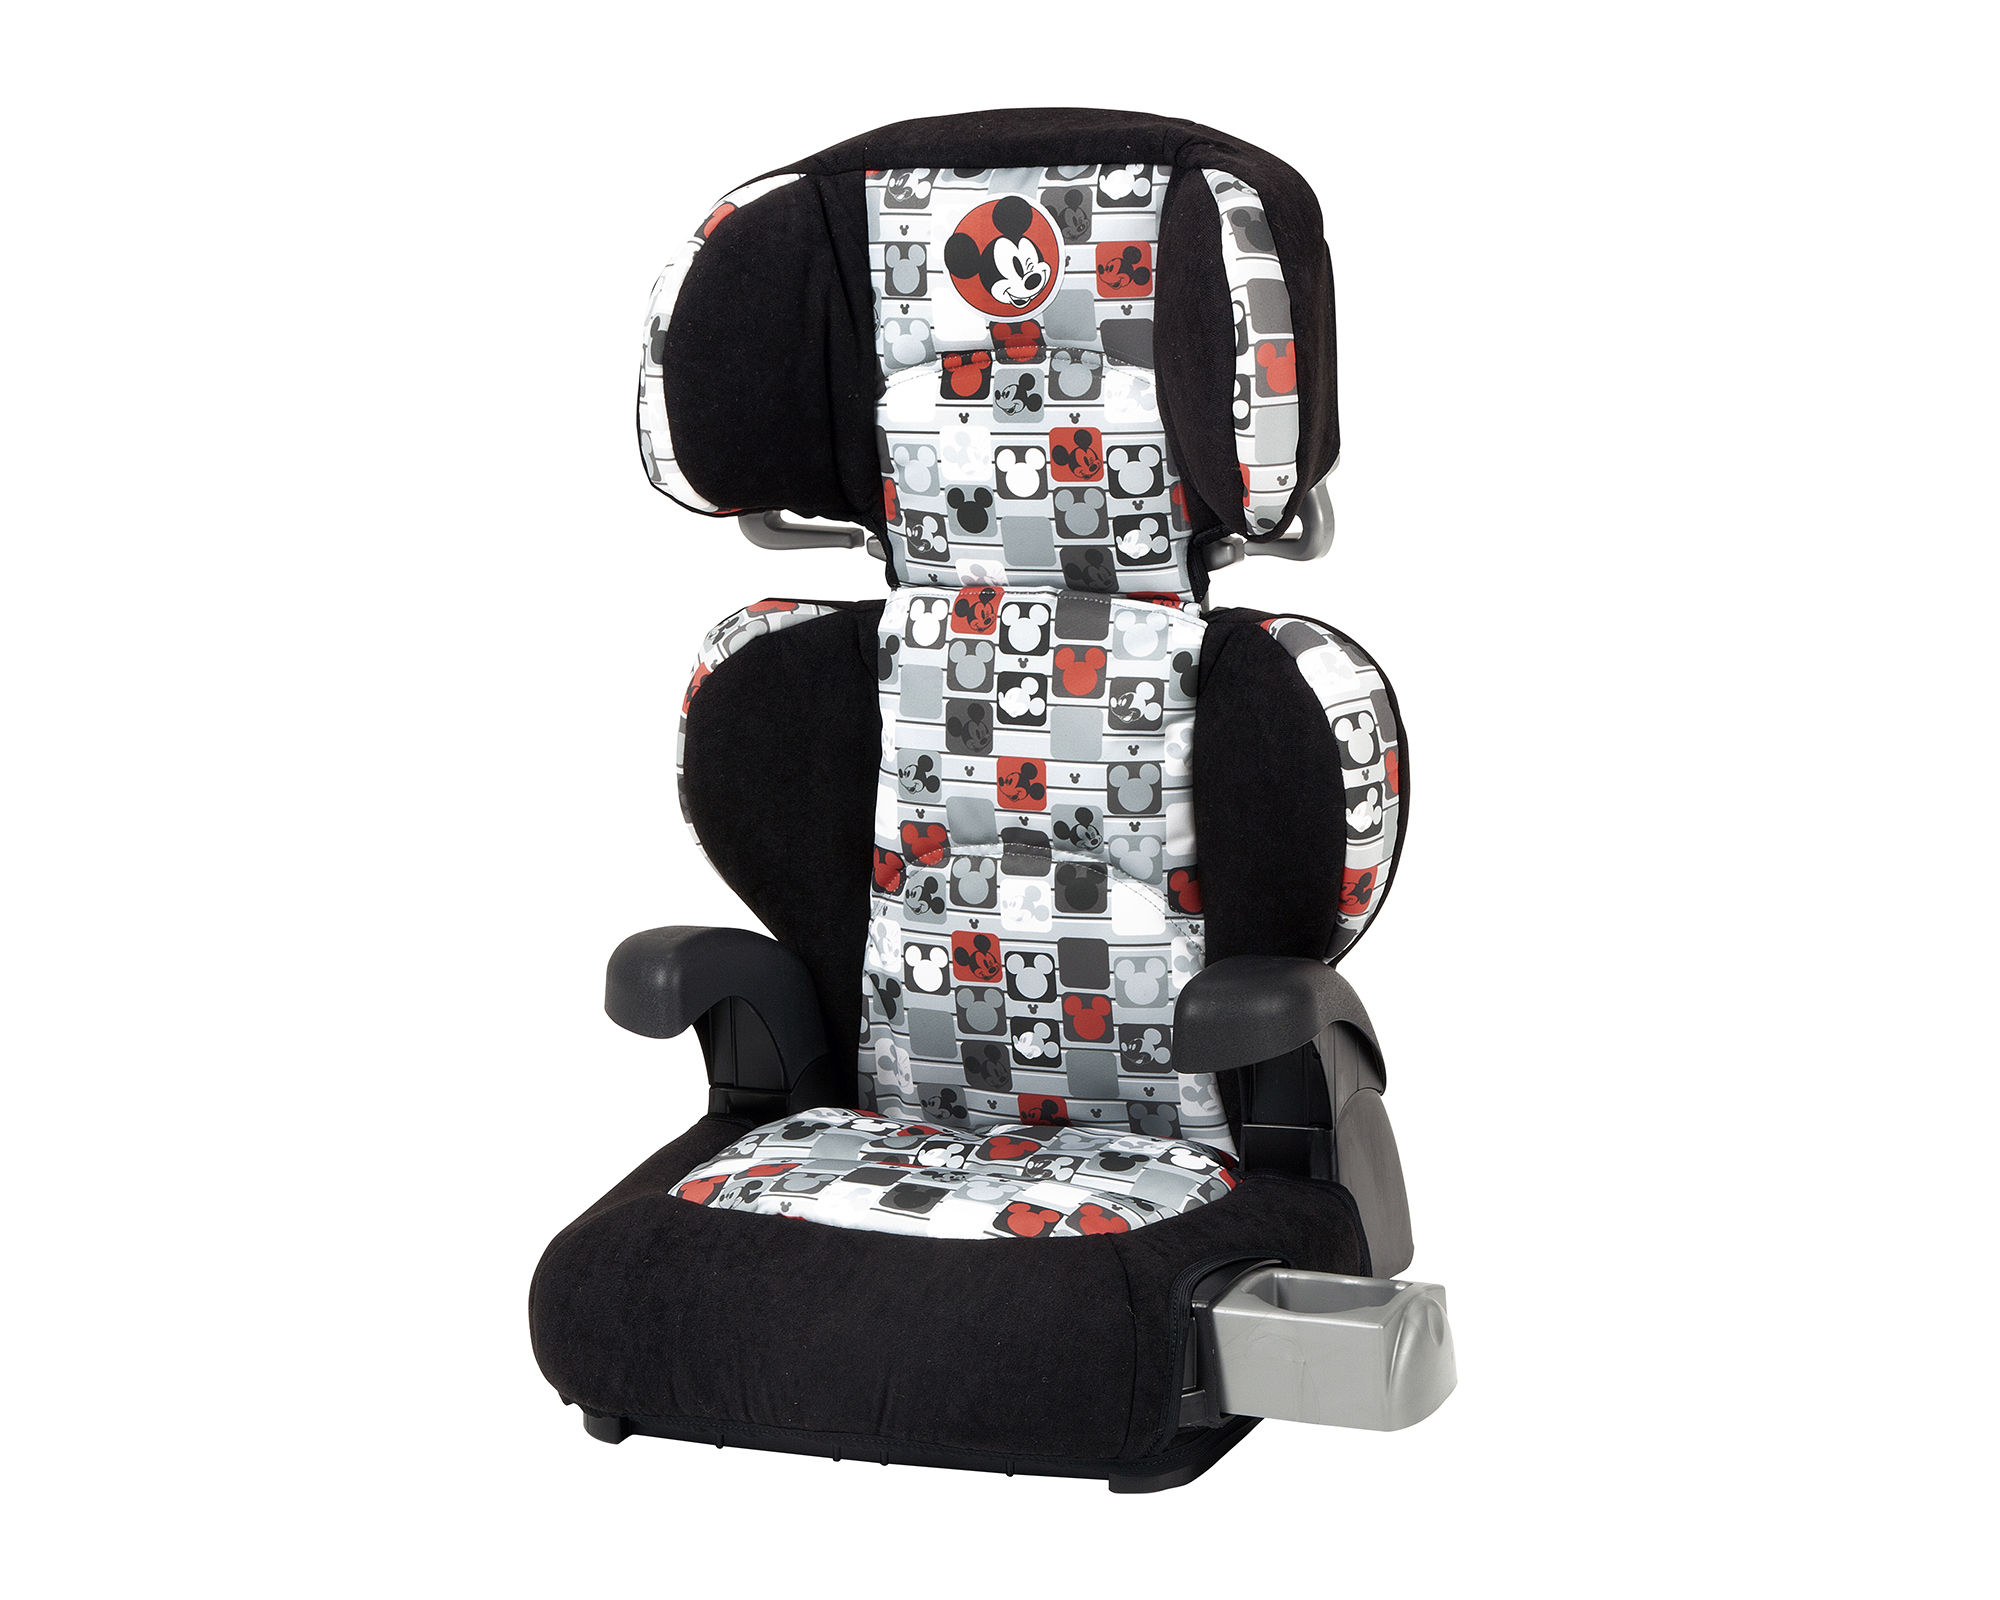 Disney Mickey Mouse Patchwork Booster Car Seat